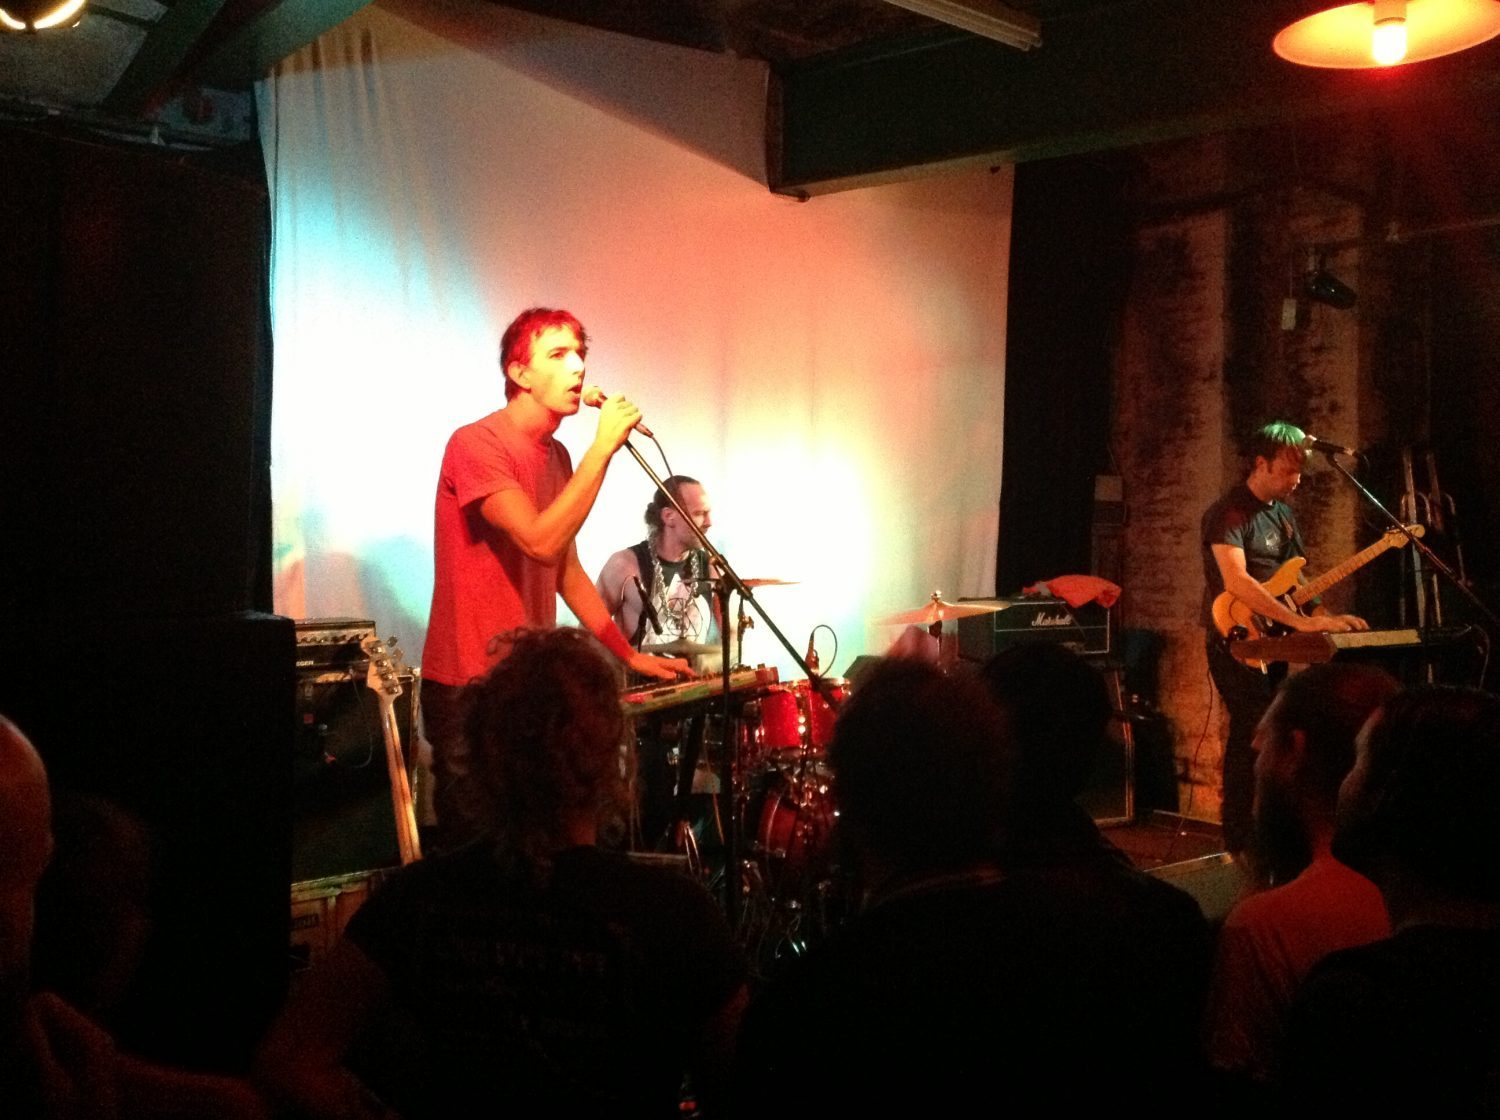 Live: Trans Am, Gum Takes Tooth and AK/DK - Green Door Store, Brighton. 11/11/2014